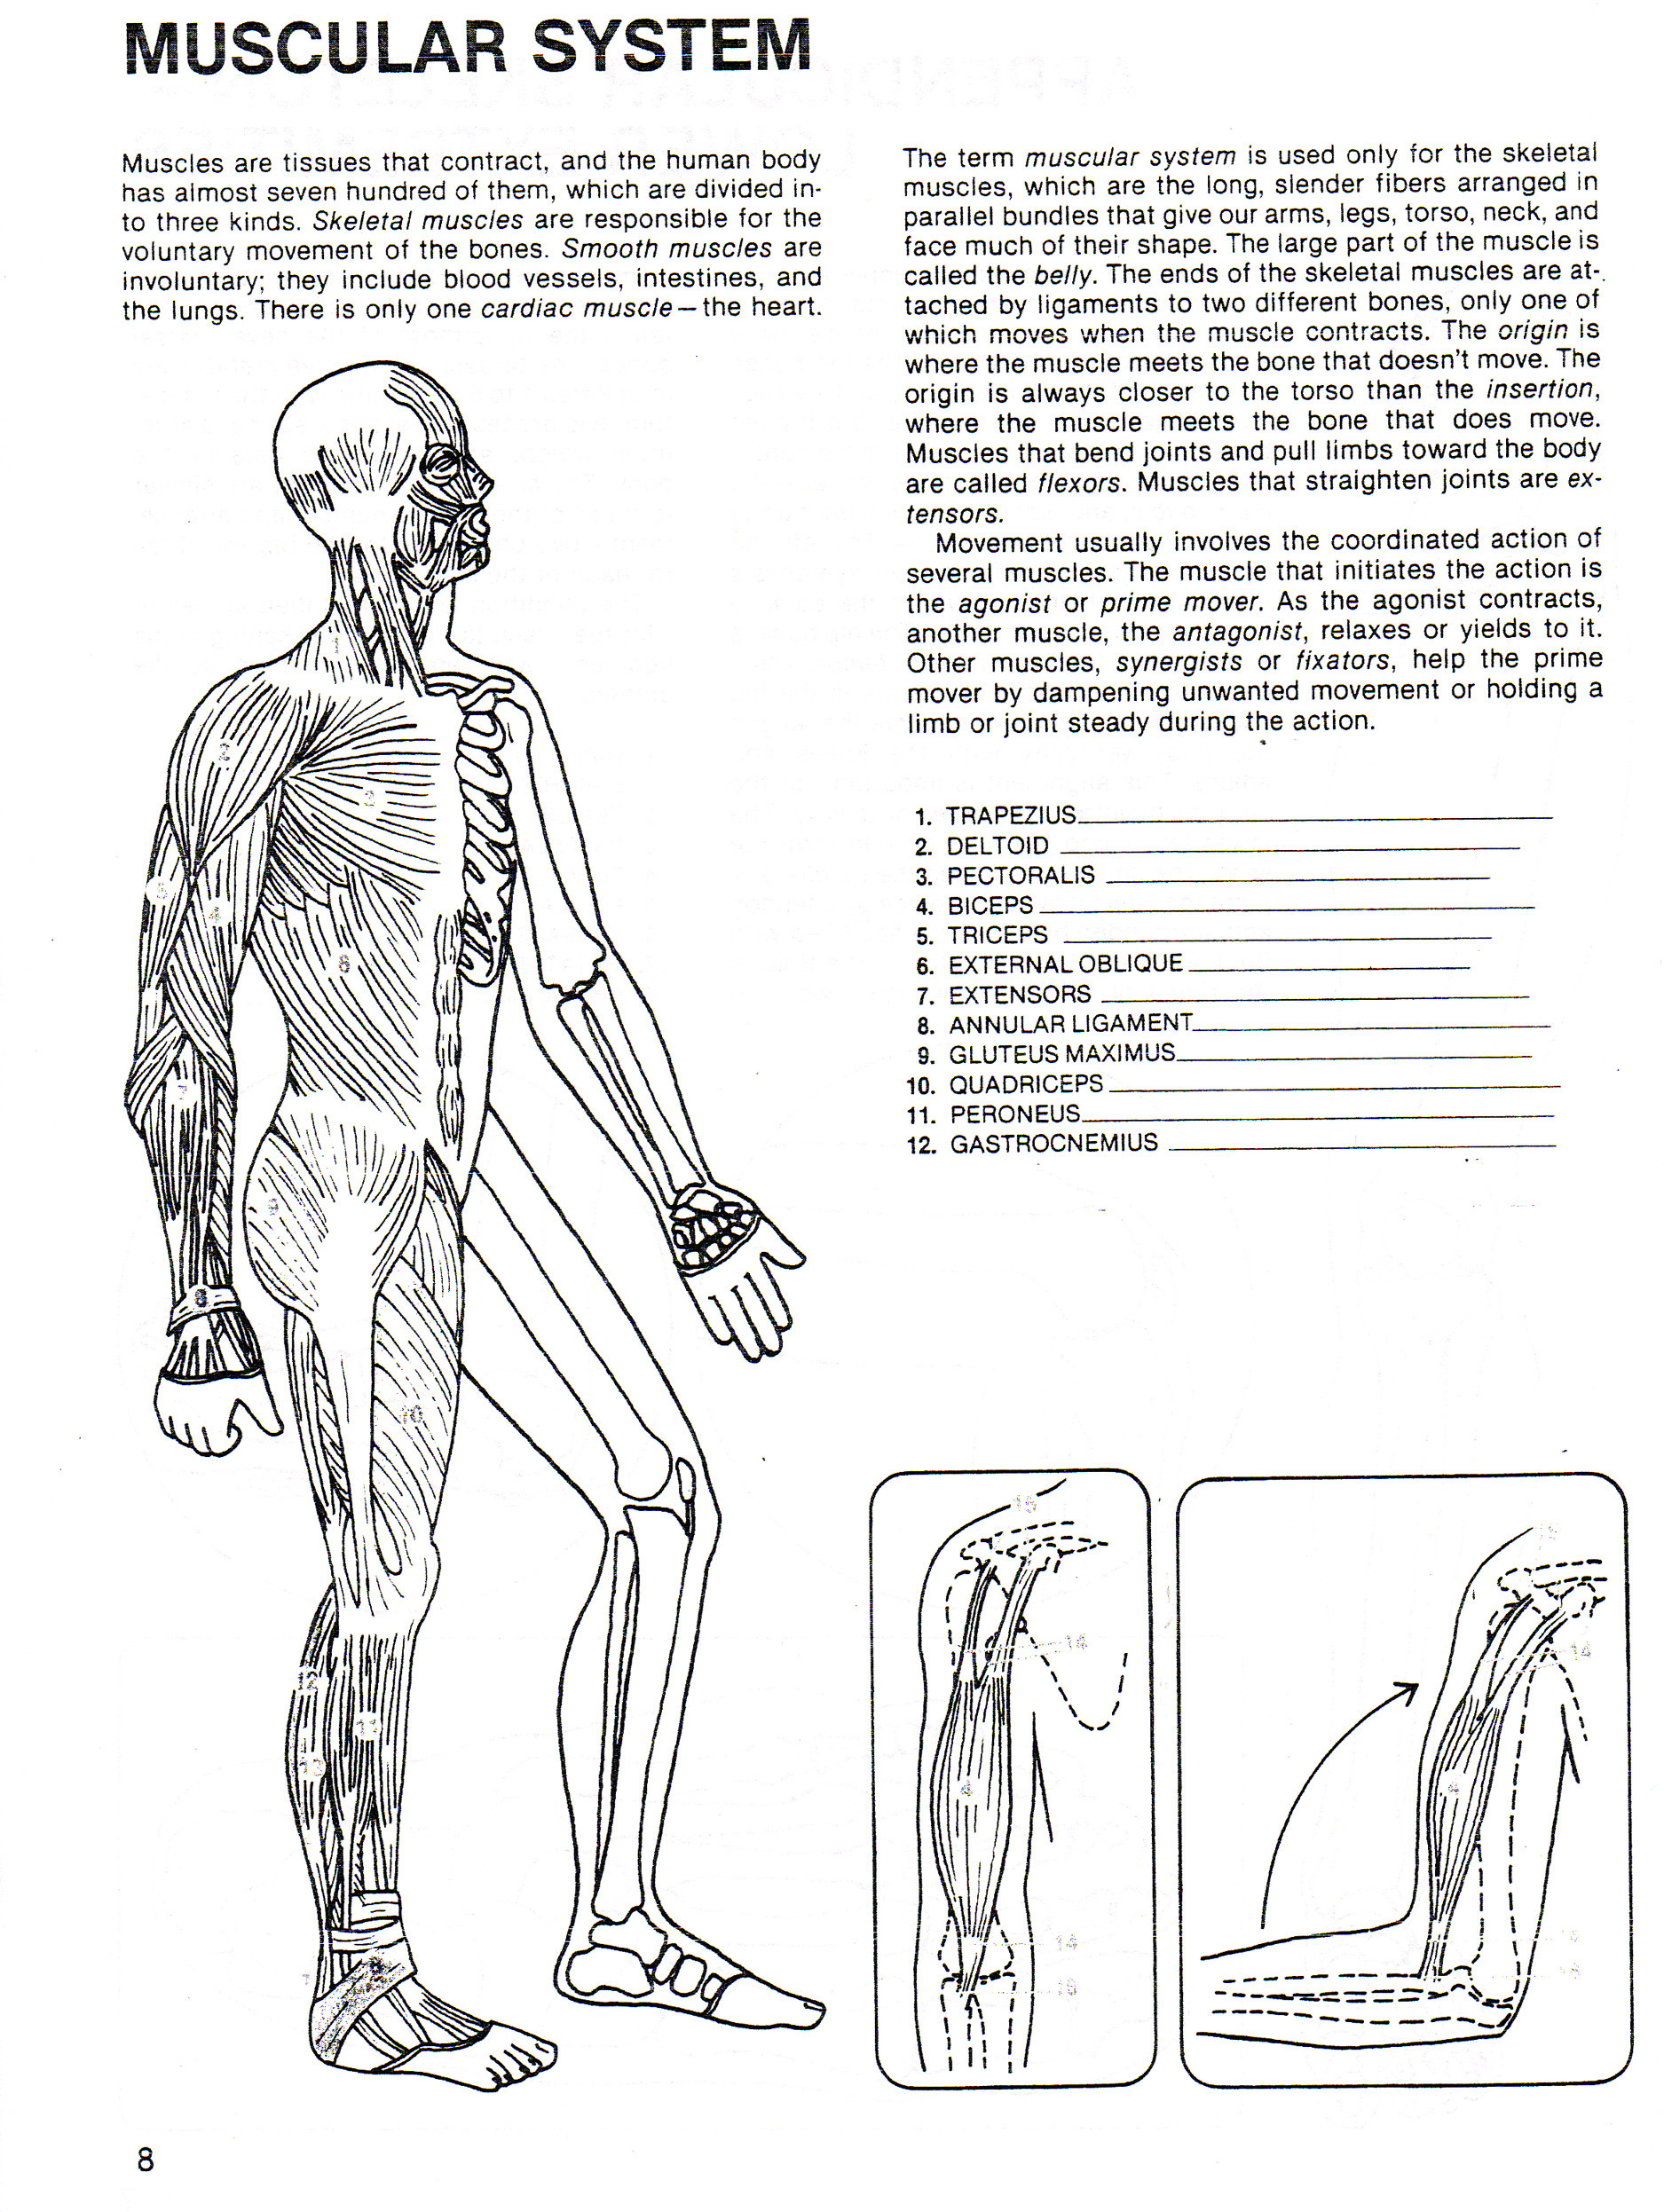 Human Body Worksheets Middle School Human Growth & Development south Junior High School Health